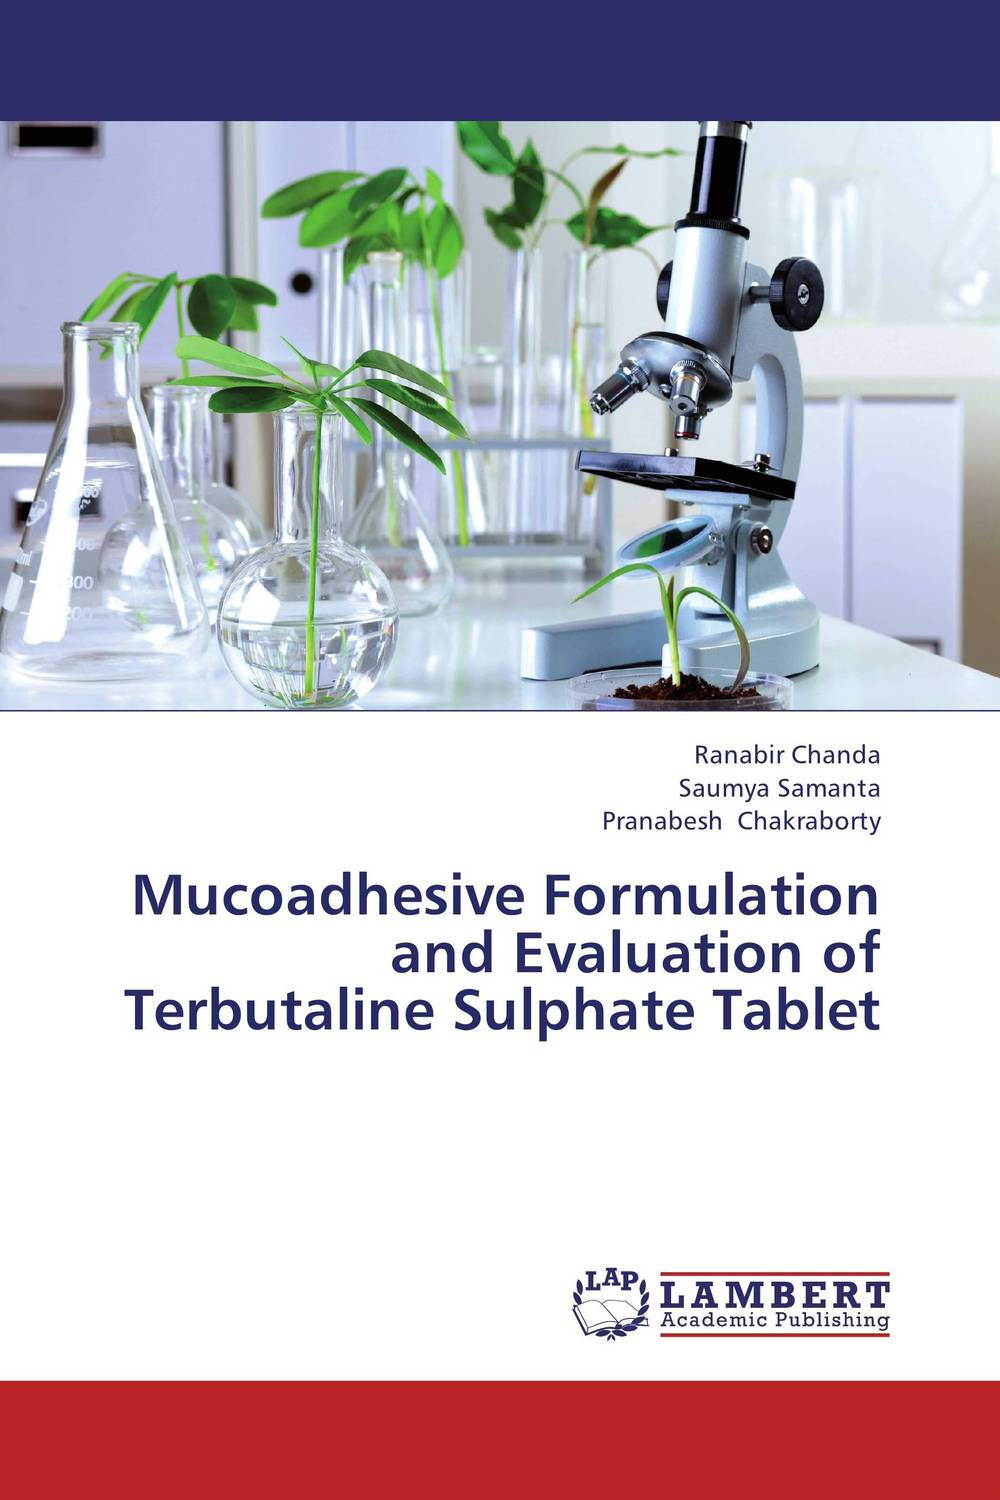 Mucoadhesive Formulation and Evaluation of Terbutaline Sulphate Tablet amita yadav kamal singh rathore and geeta m patel formulation evaluation and optimization of mouth dissolving tablets